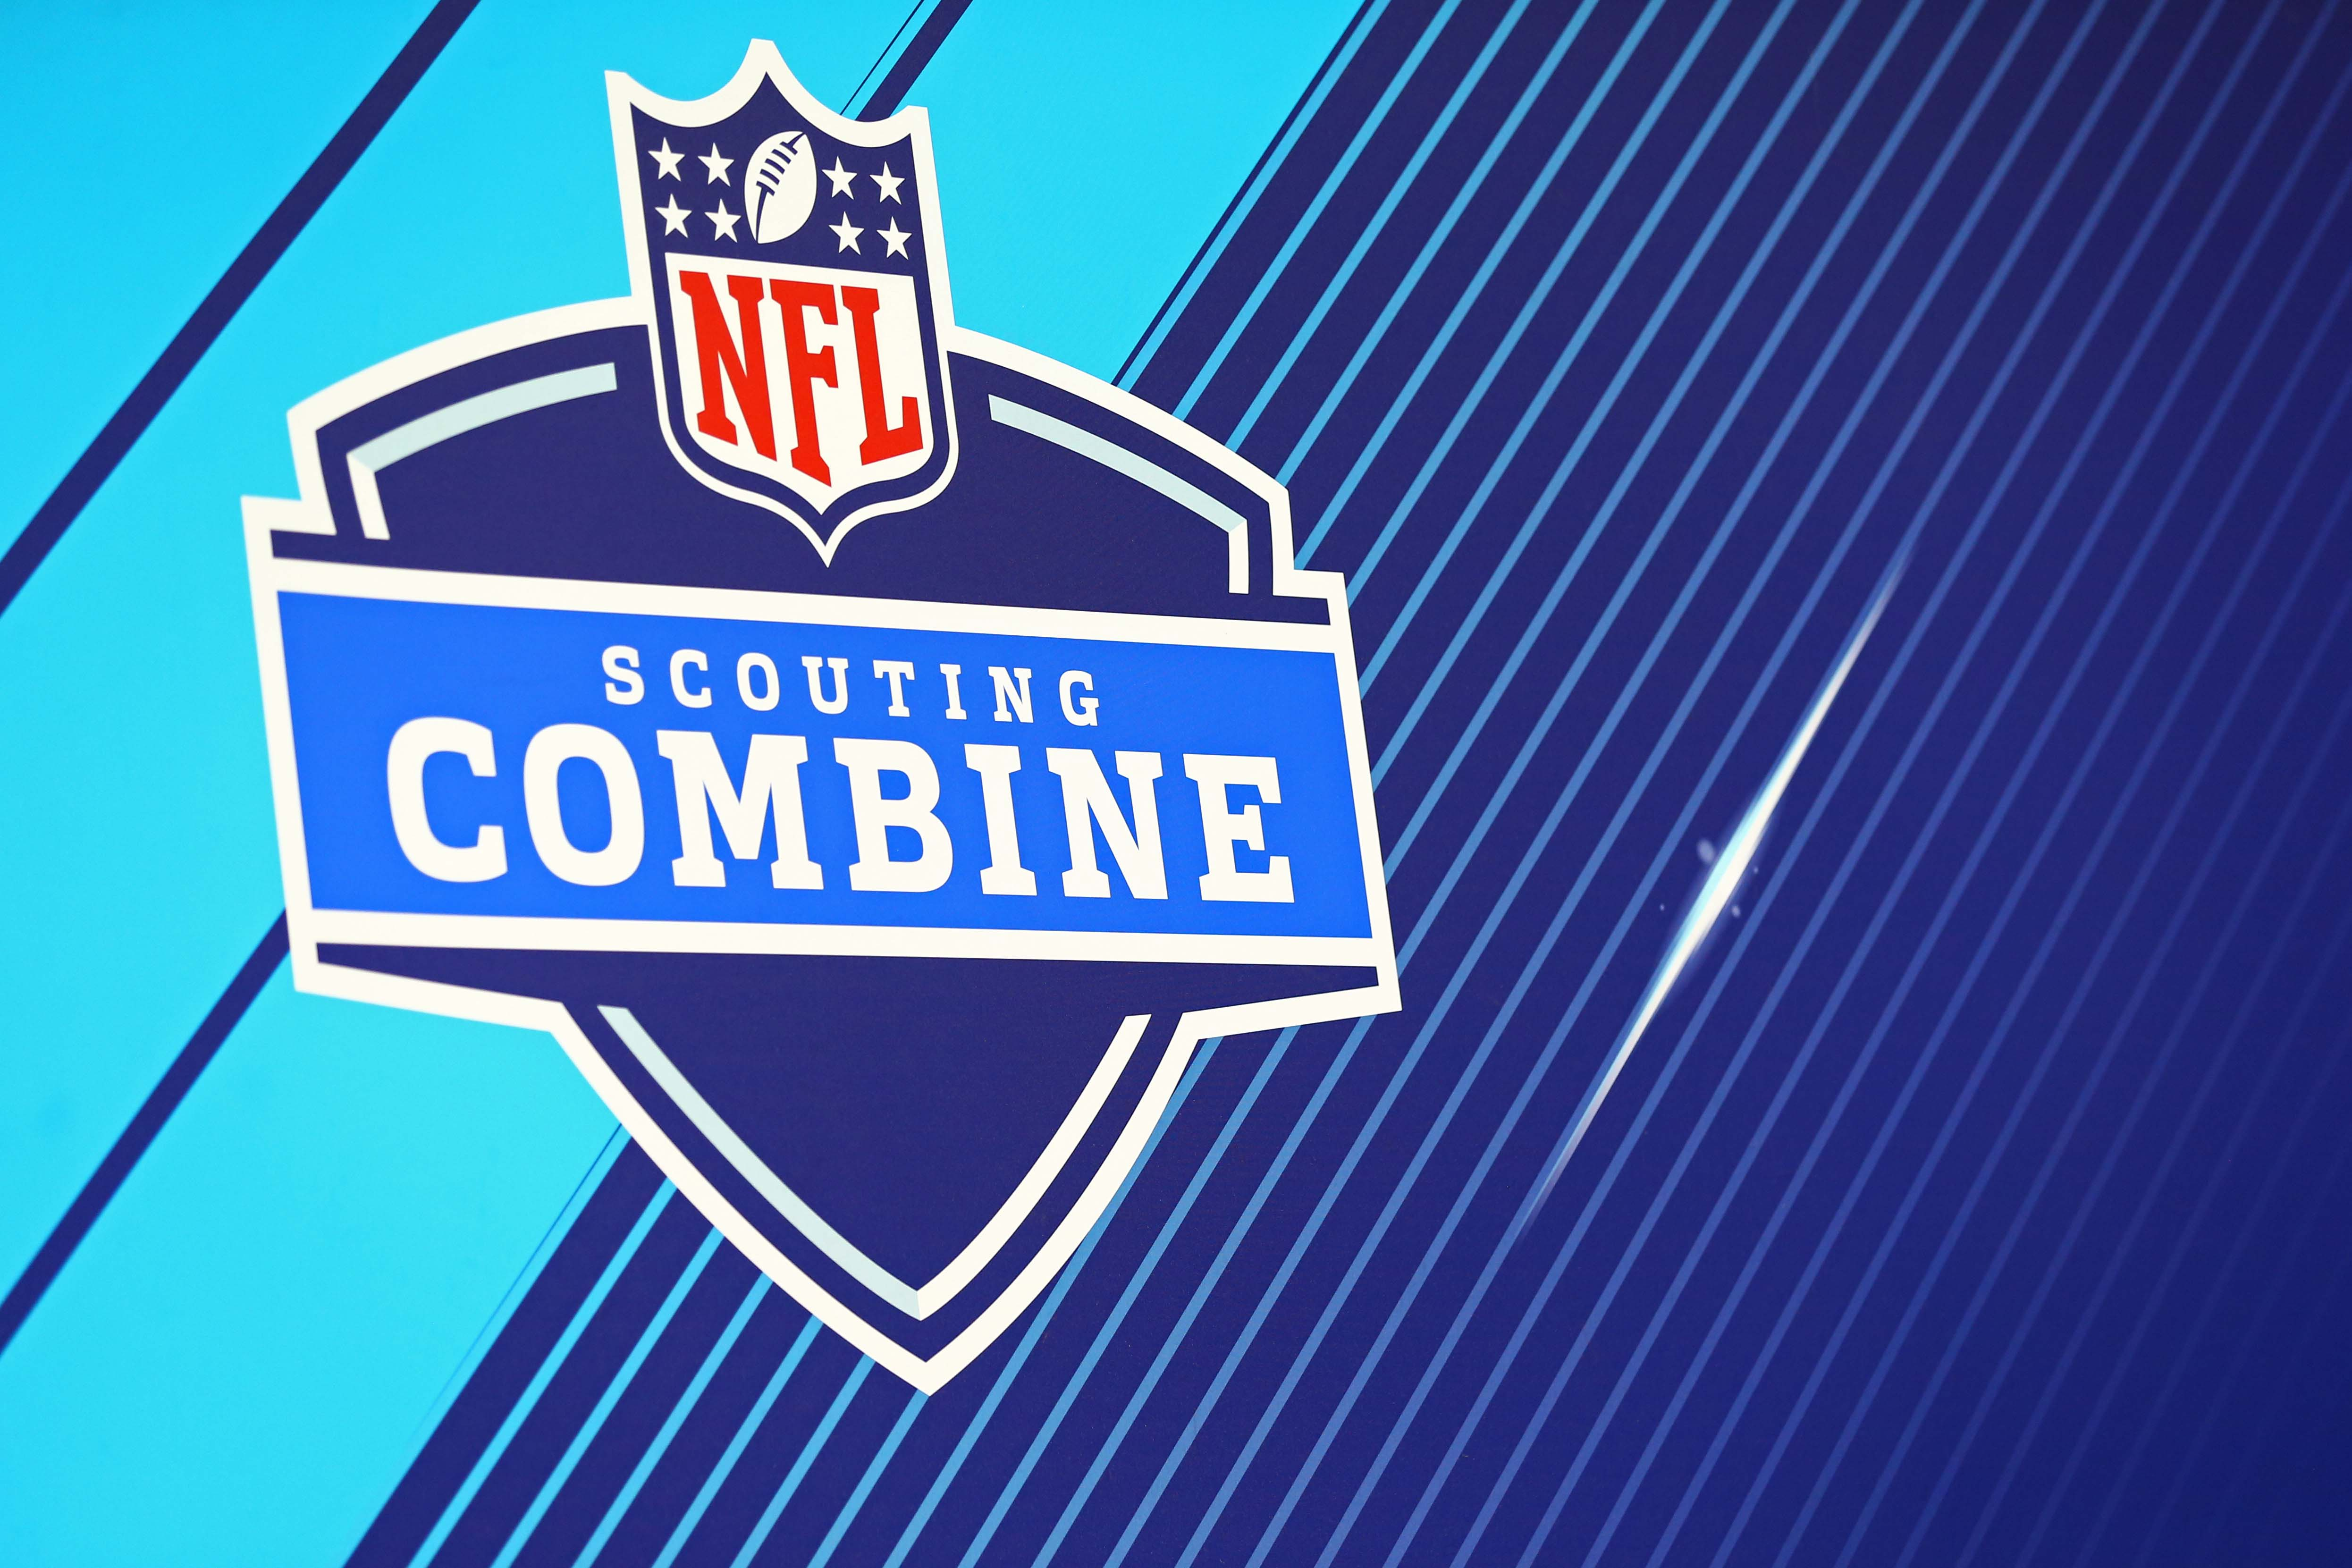 NFL Network to air pro day workouts in absence of NFL Scouting Combine